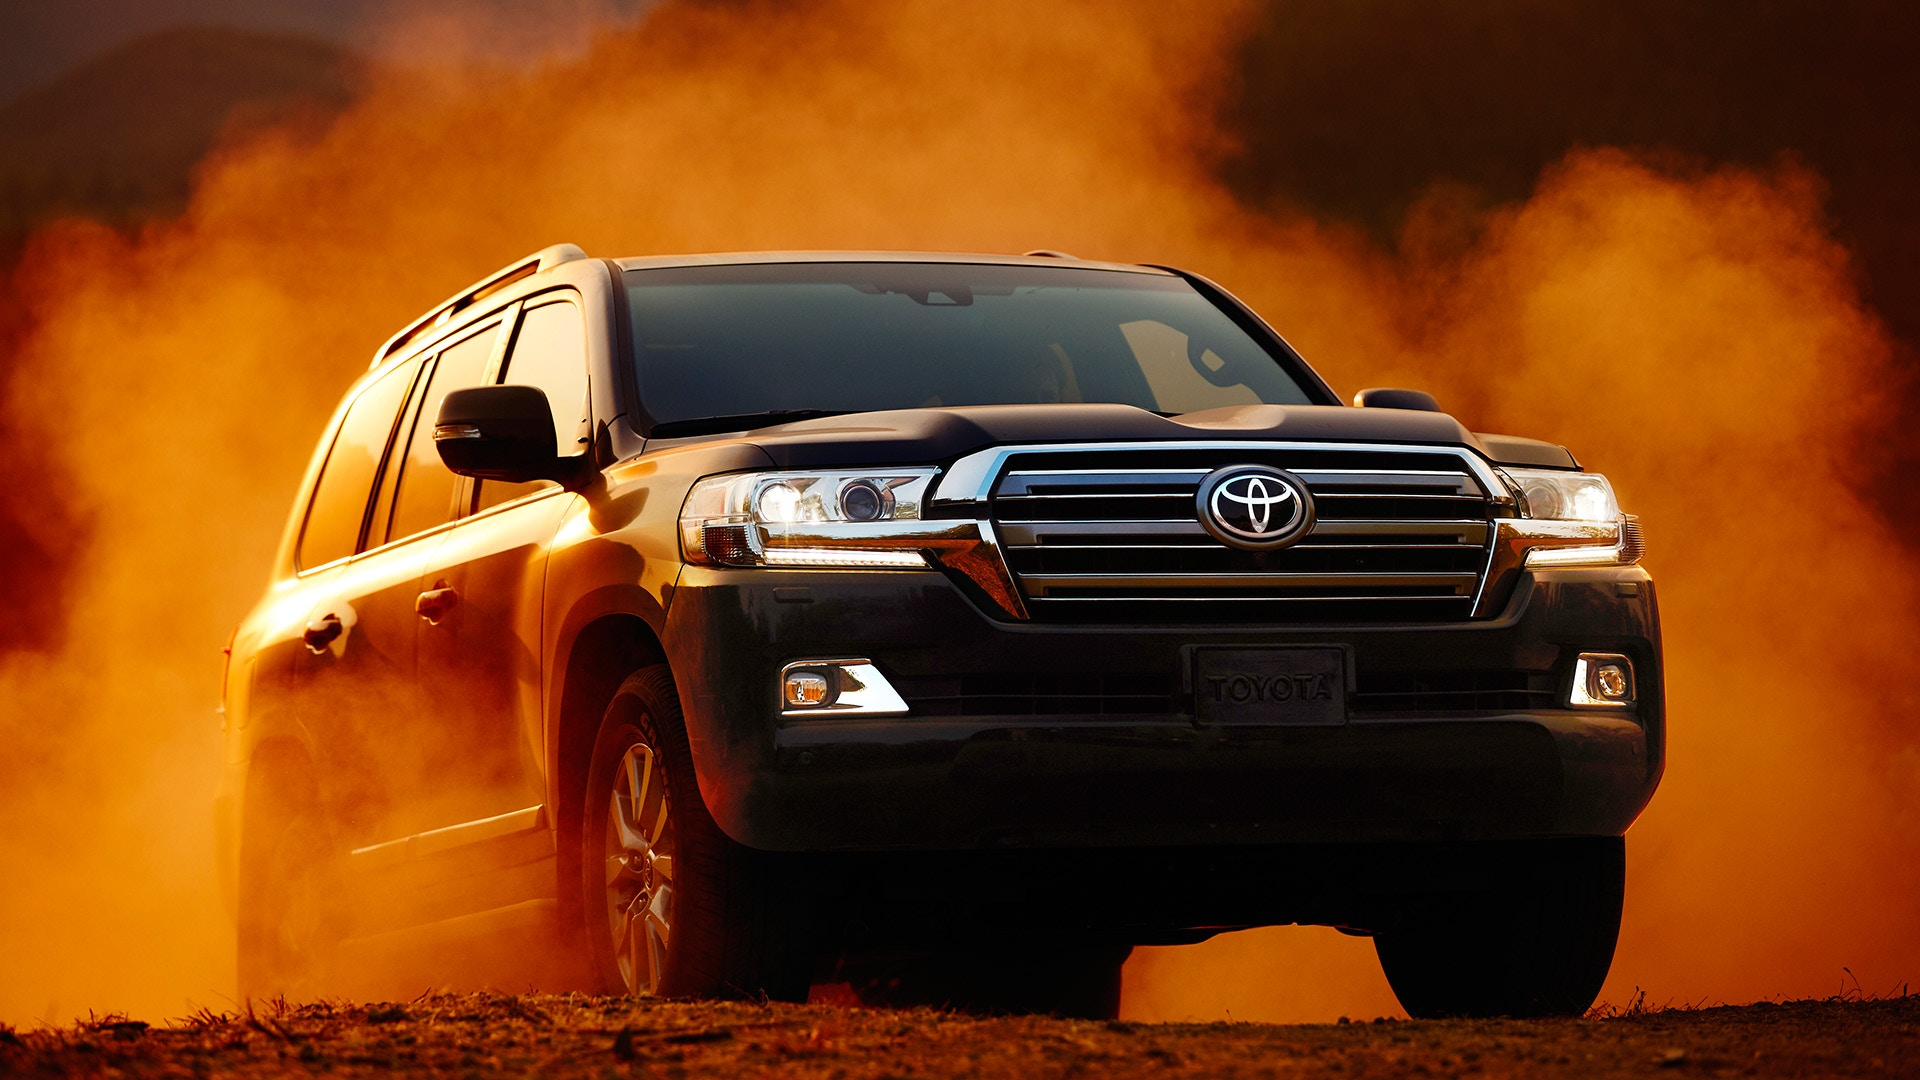 2019 Toyota Land Cruiser for Sale - Toyota Of Greenwich